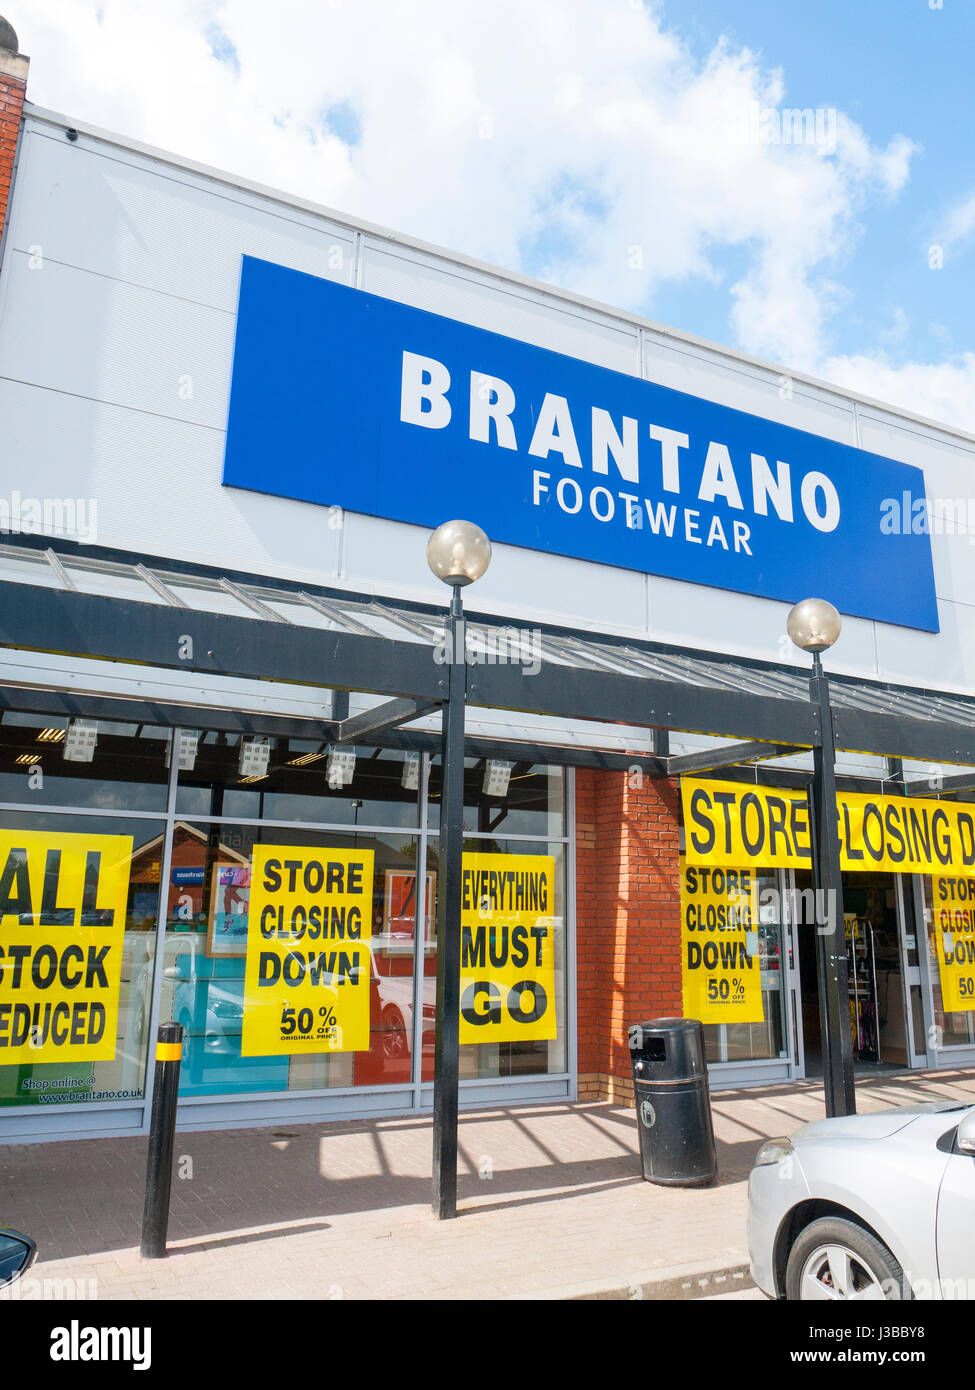 Brantano footwear store closing down in Crewe Cheshire UK - Stock Image